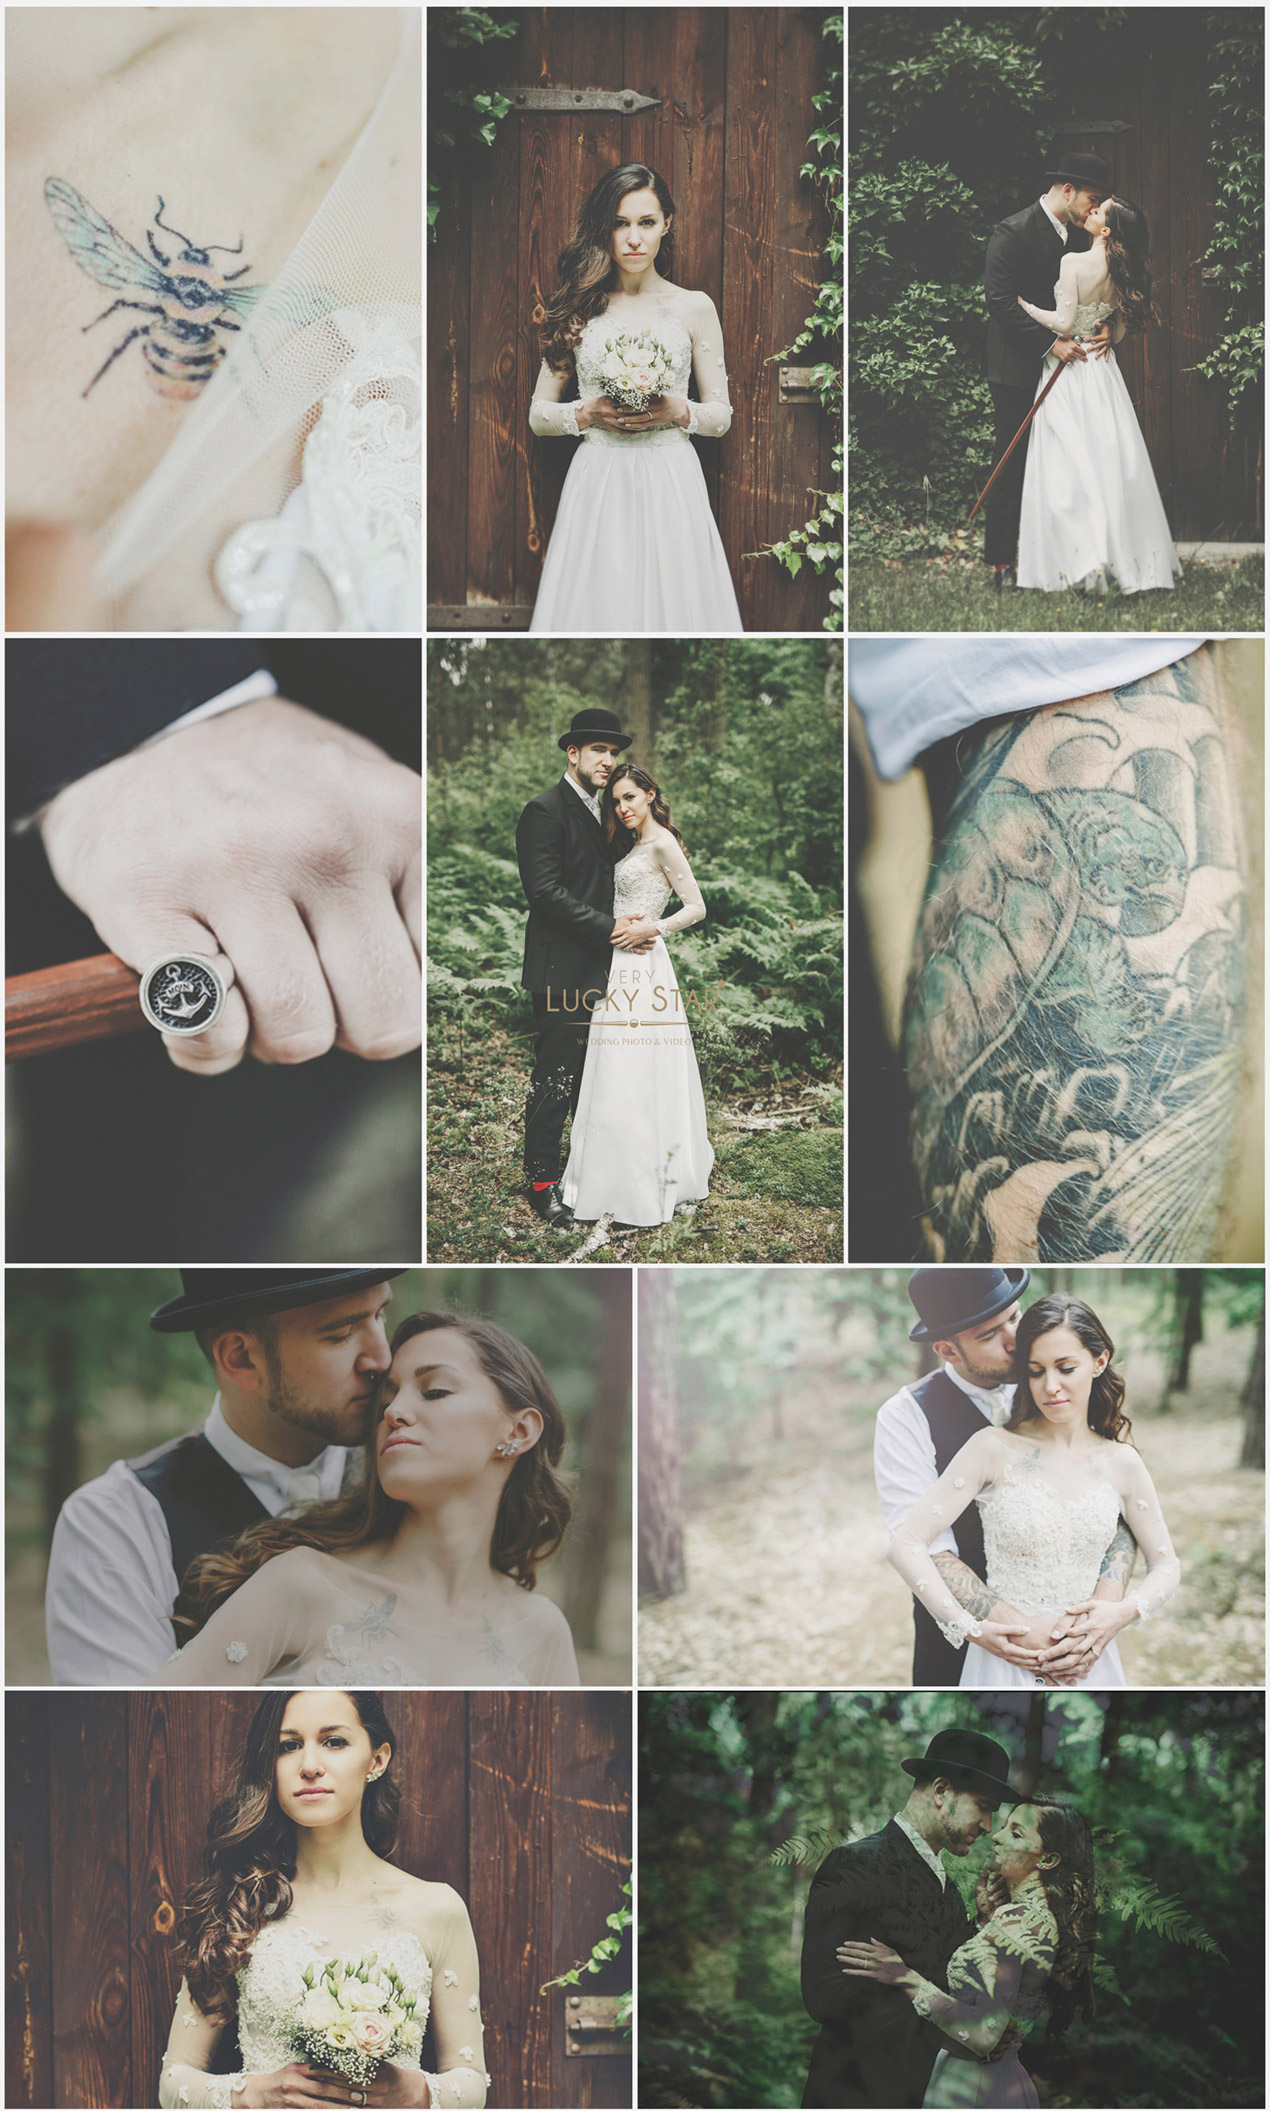 Boho-Vintage-Whimsical-Wedding-Ślub-Fotografia